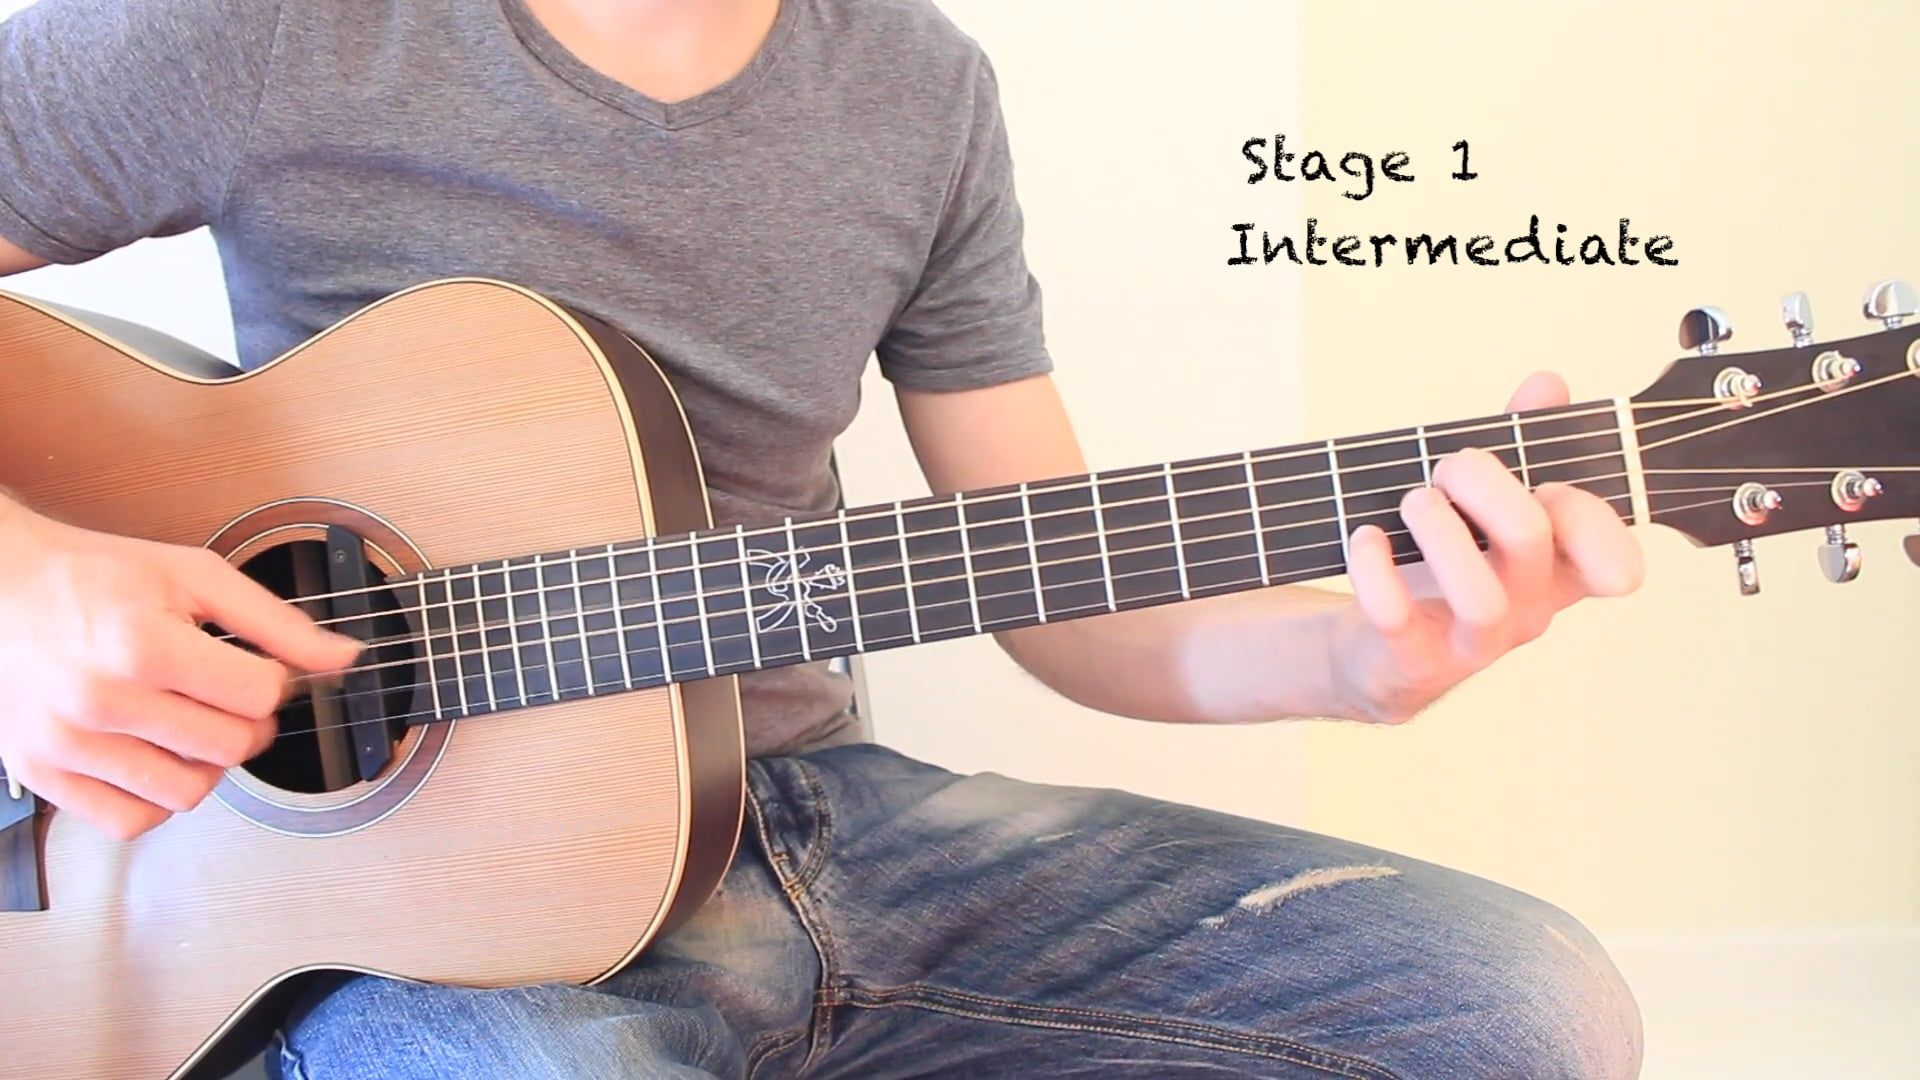 Acoustic Steps Stage 1 Fingerstyle Technique For Intermediate Advanced Guitar Players Guitar Guitar Player Fingerstyle Guitar Lessons